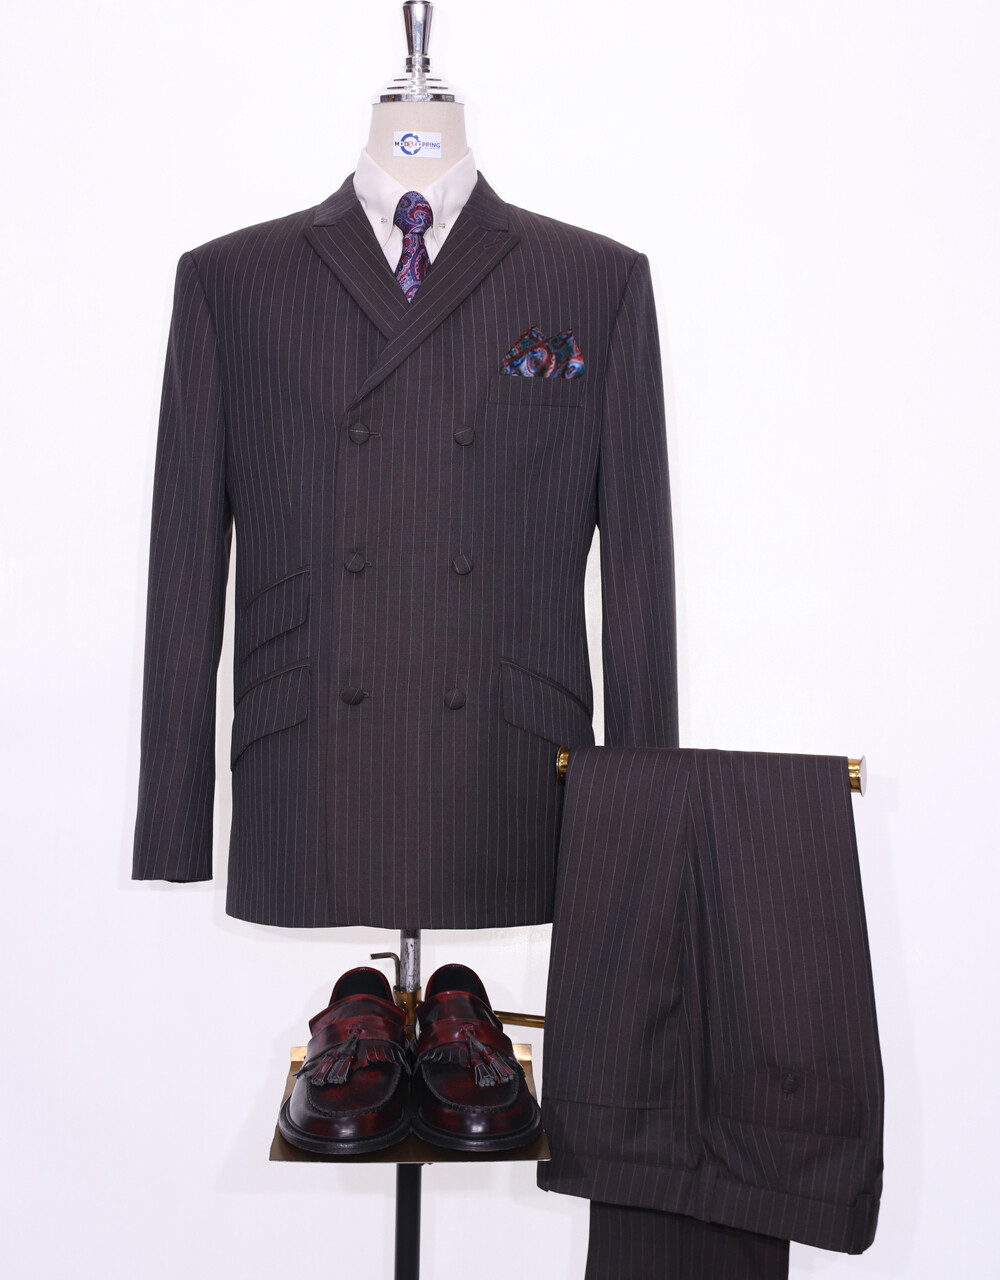 Double Breasted Suits | Chocolate Brown Pinstripe Mod Suit